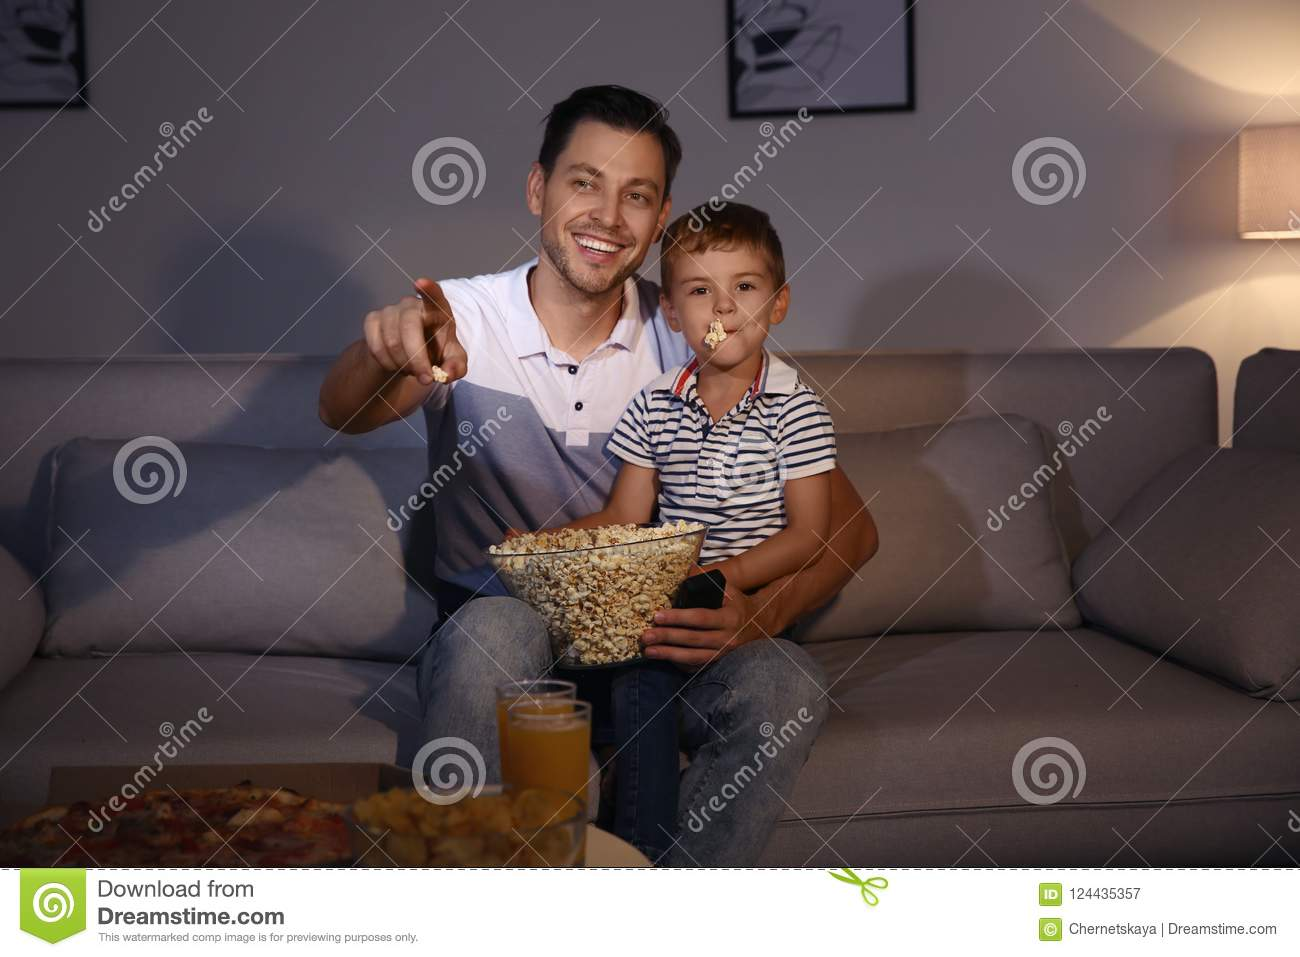 Family watching TV with popcorn in room at time